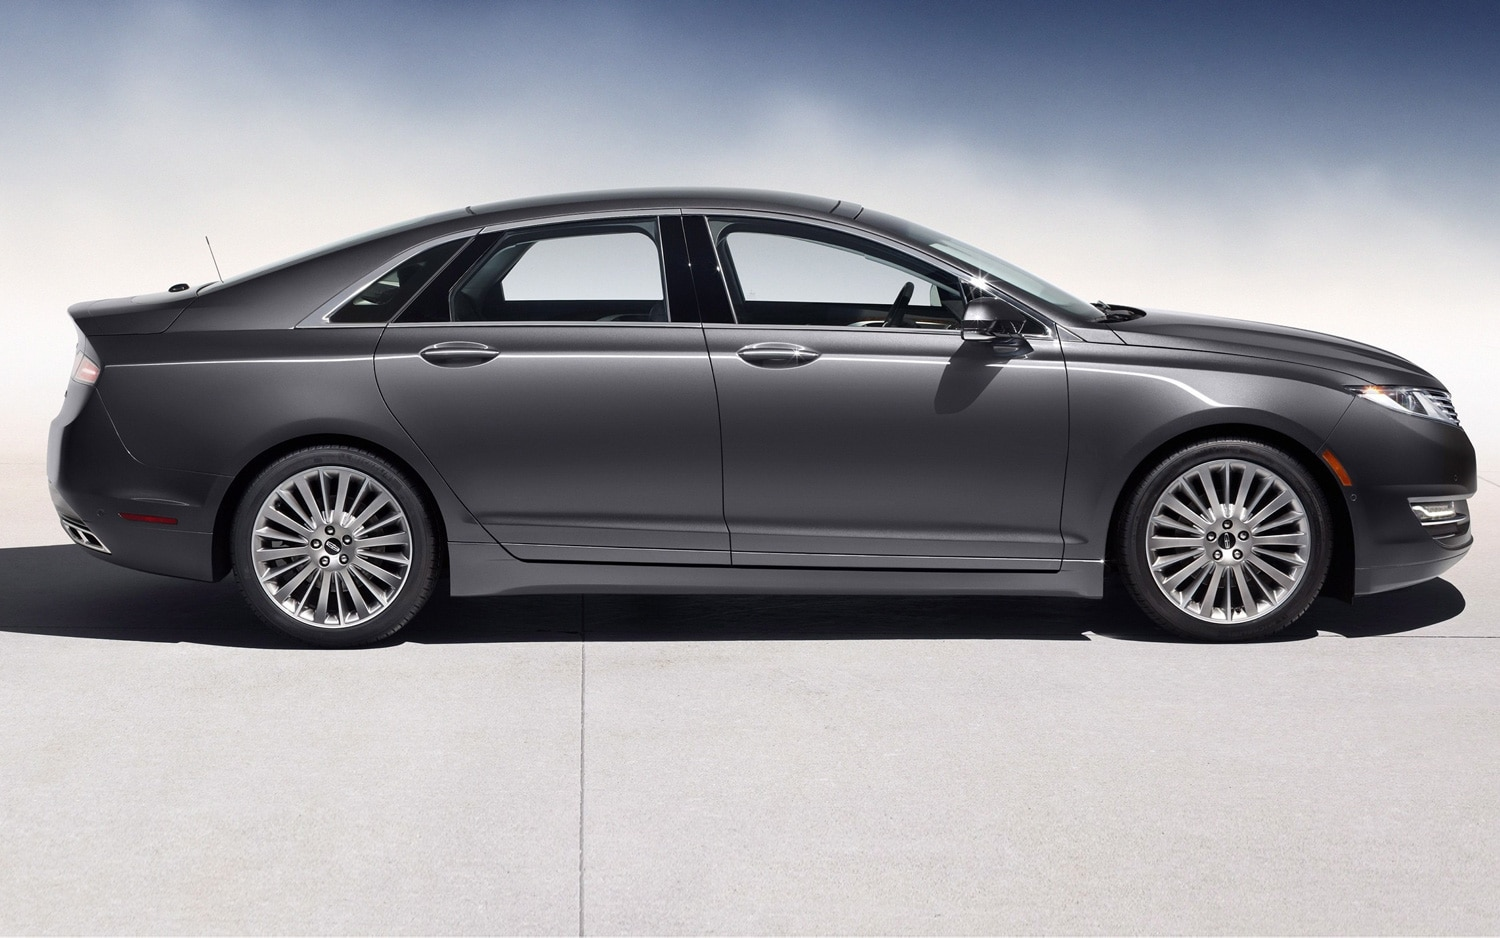 2013 Lincoln MKZ Profile1